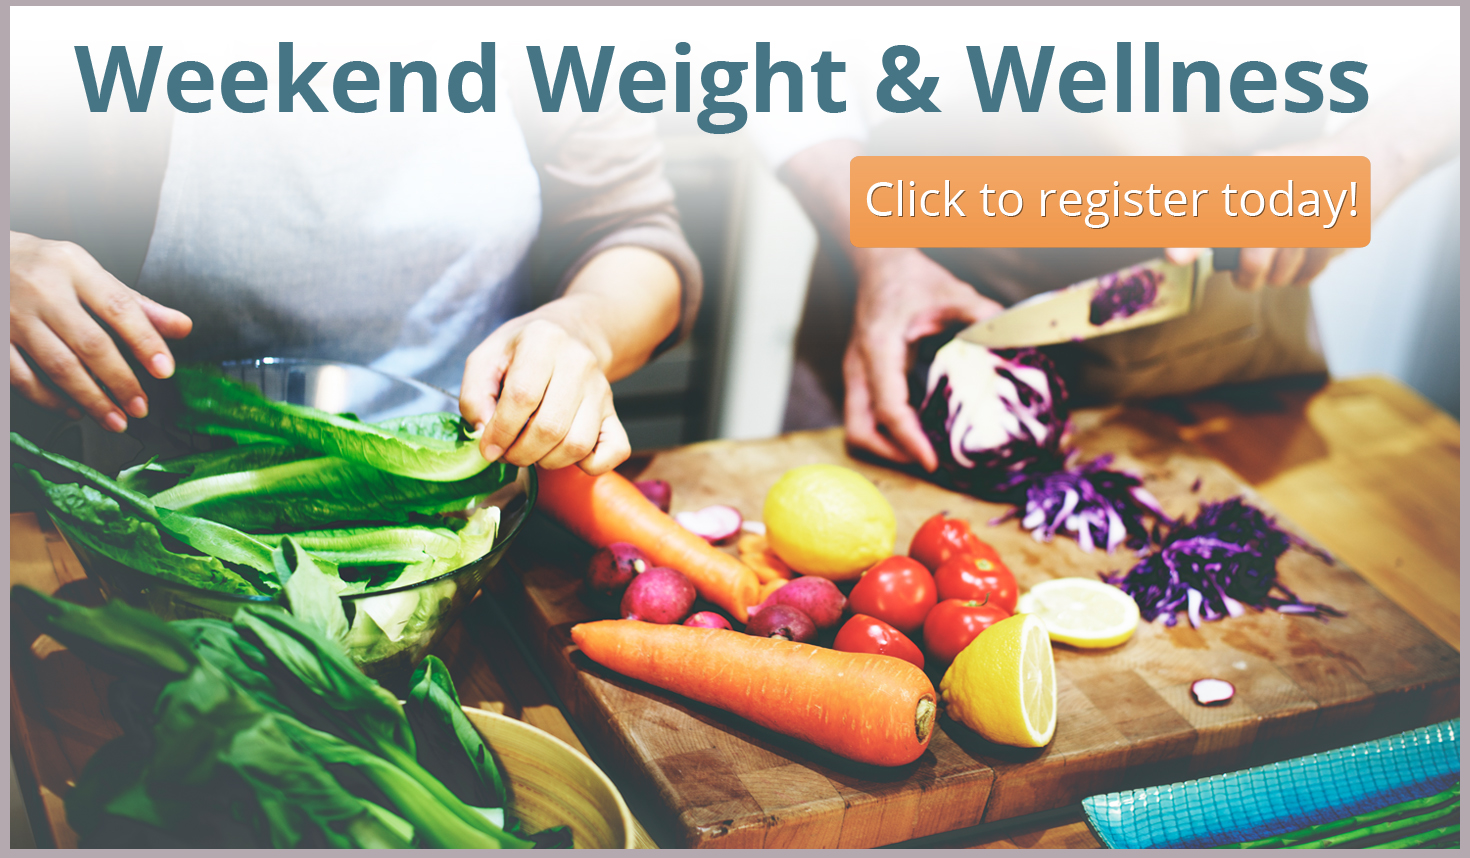 Weekend Weight & Wellness